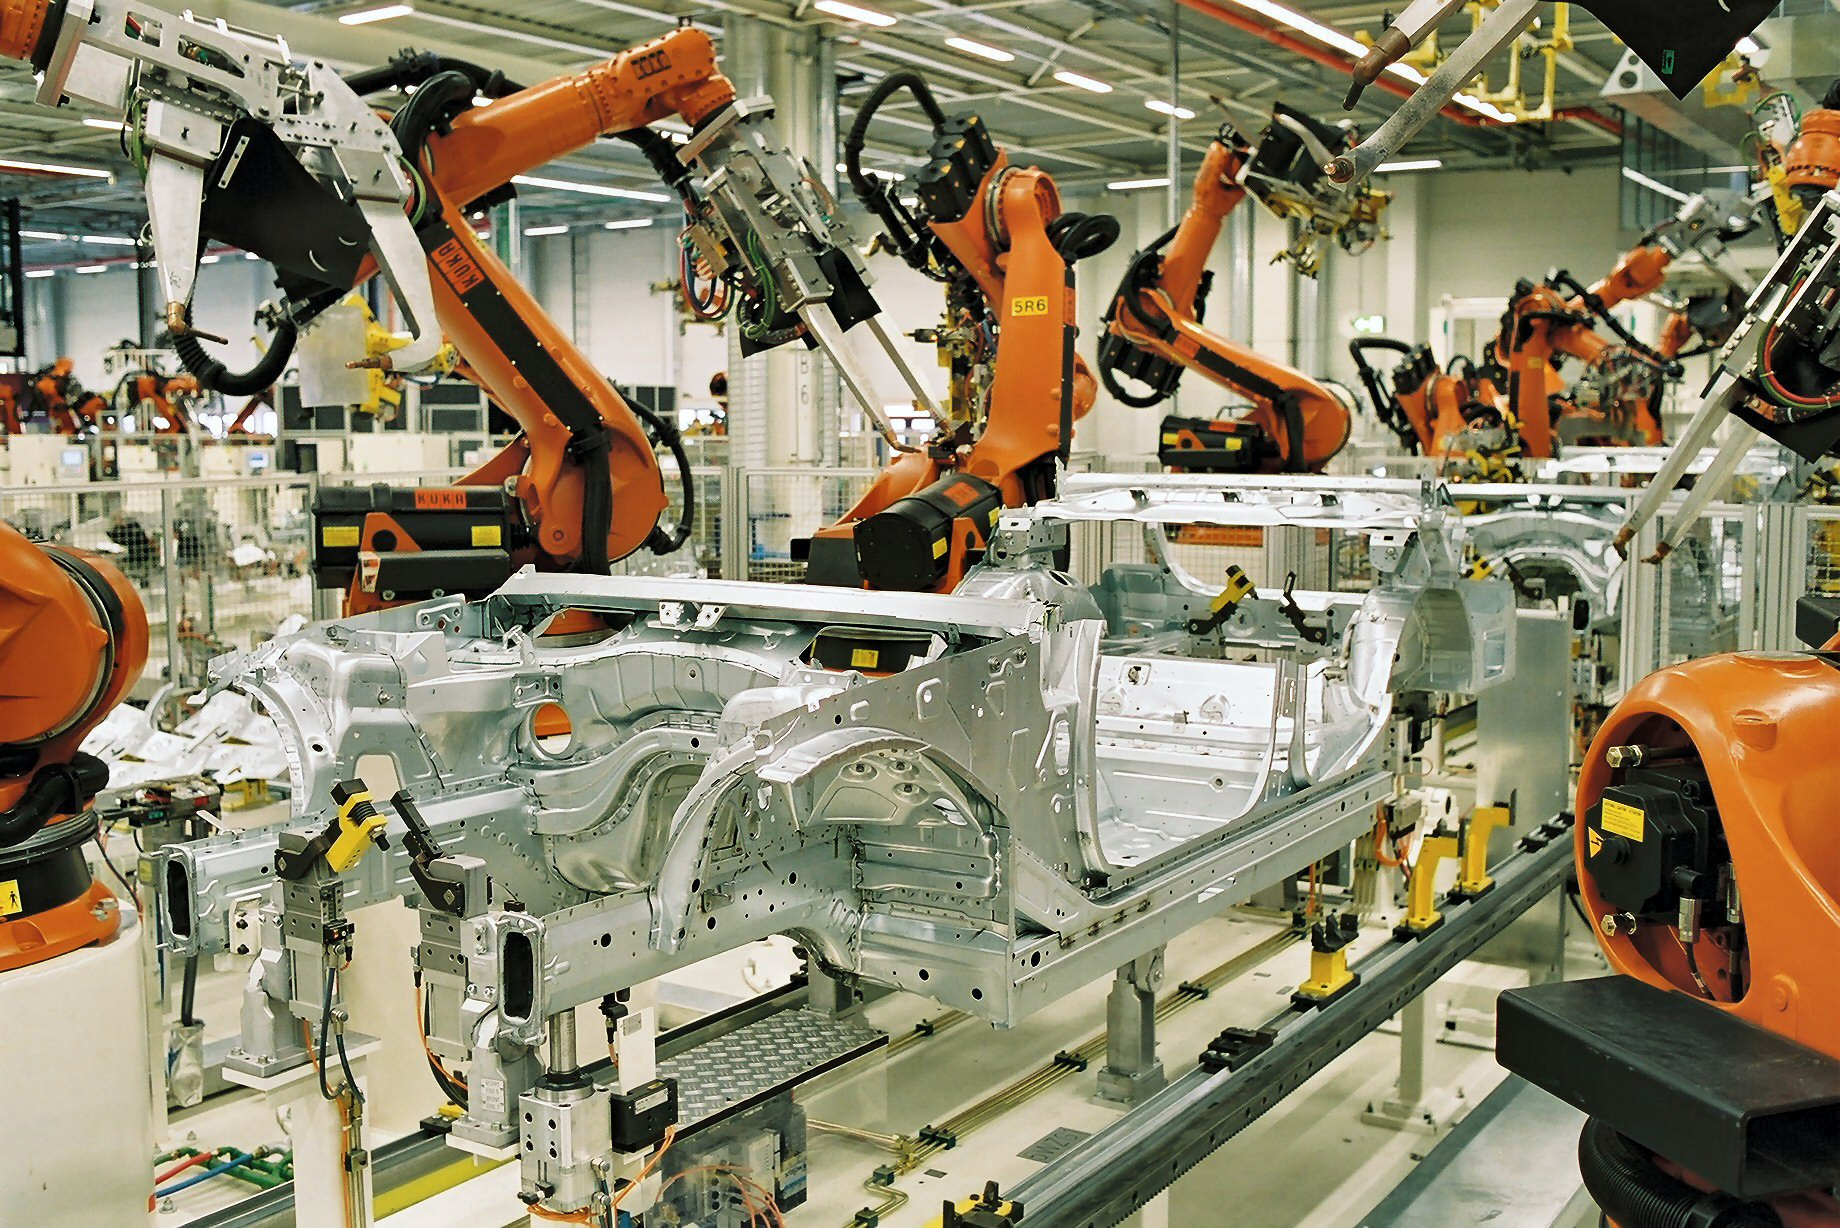 Industrial Production Down by 0.8% in Euro Area